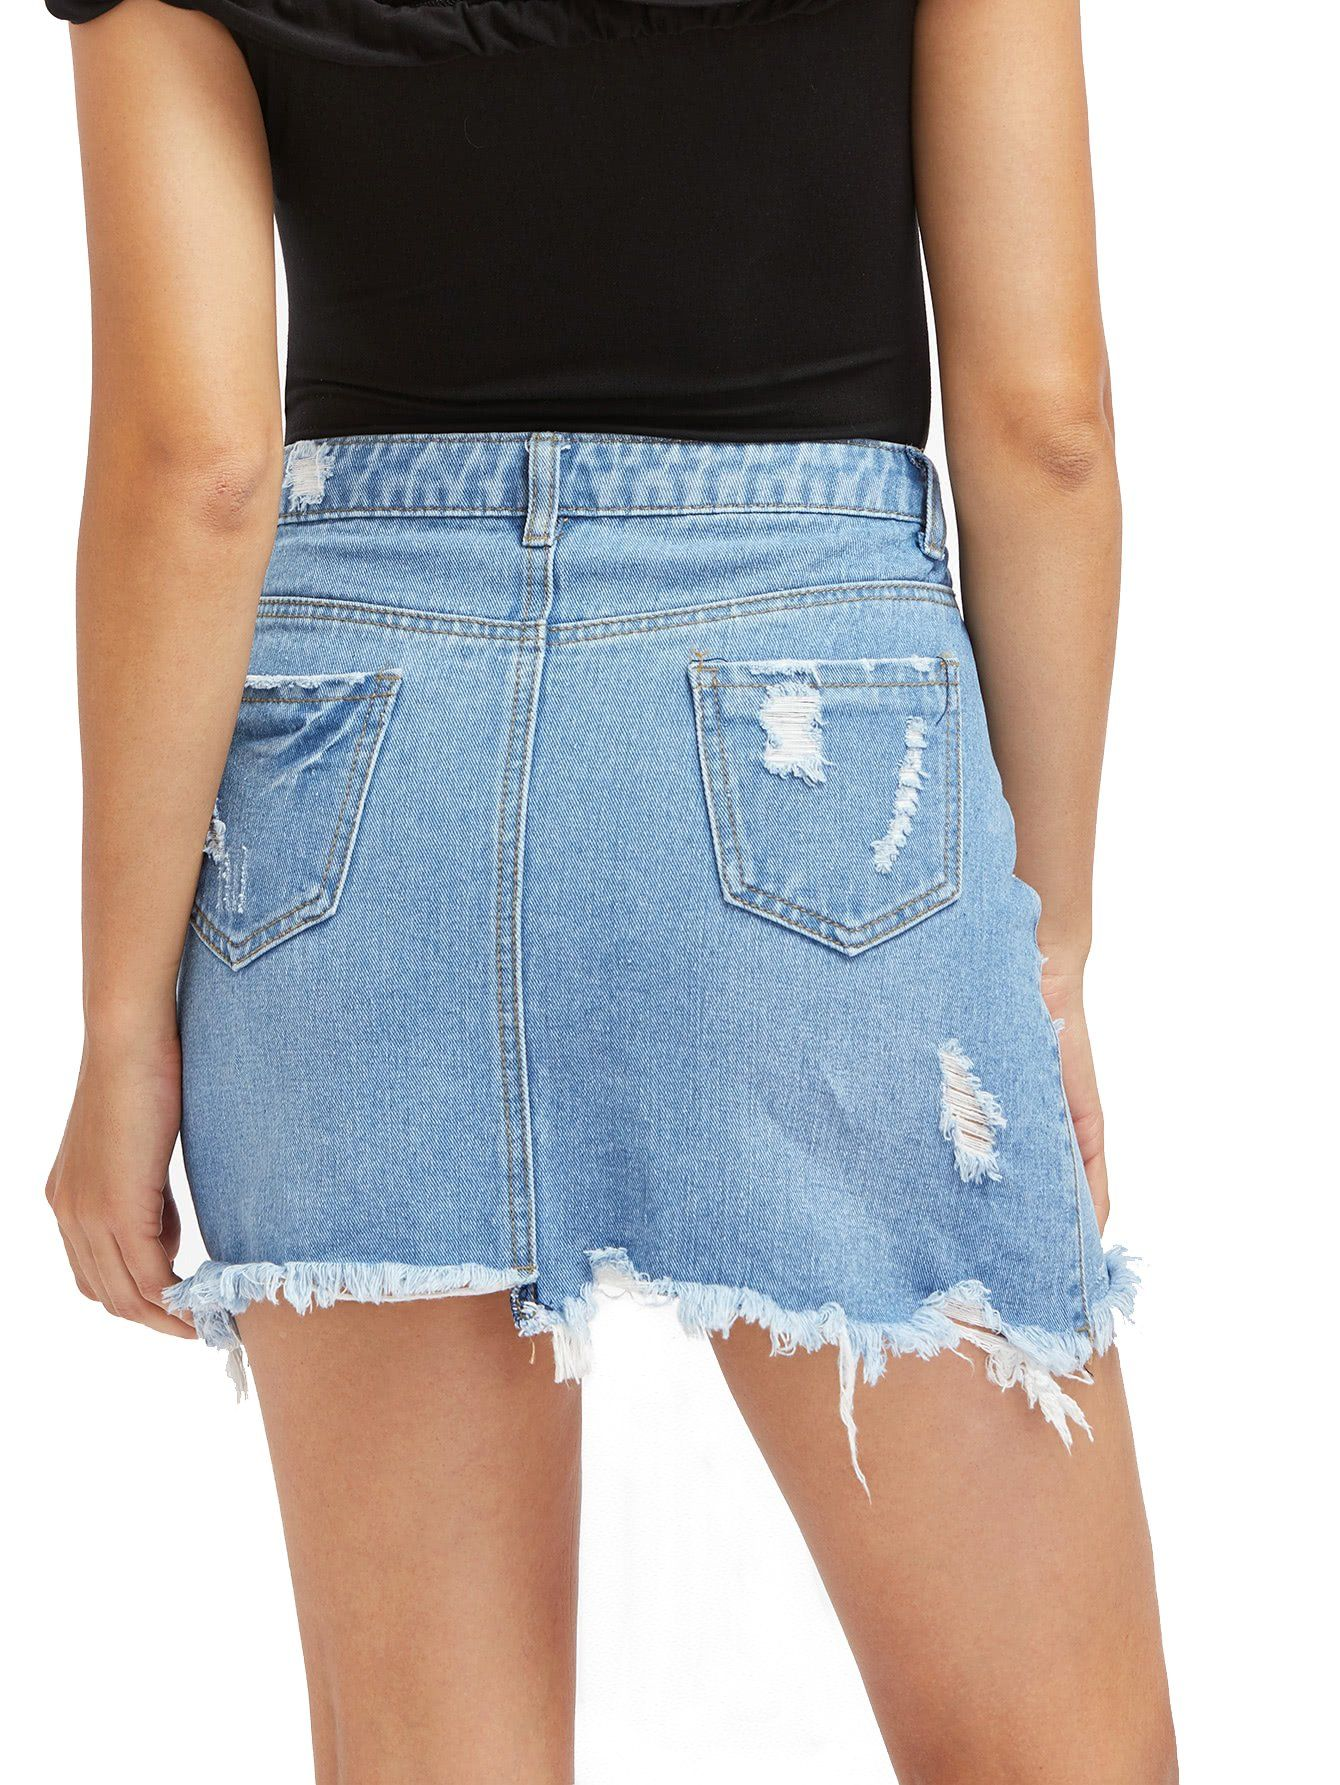 45a6e1cdc Verdusa Womens Casual Distressed Ripped ALine Denim Short Skirt ABlue*1 M  -- You can get more details by clicking on the image.-It is an affiliate  link to ...